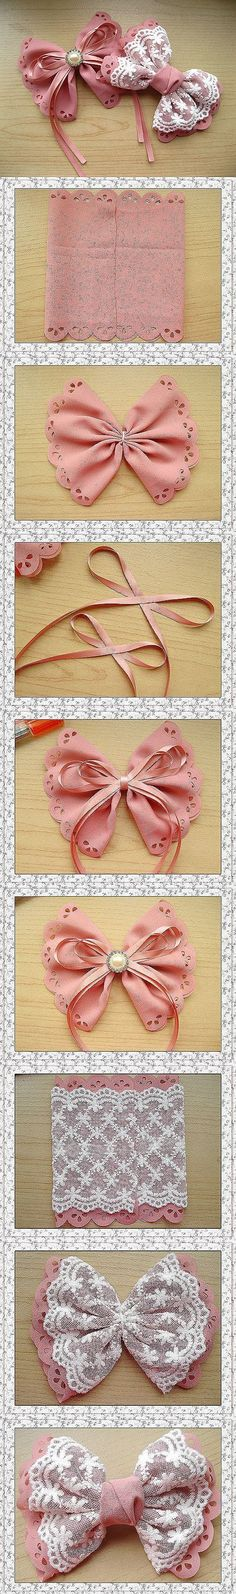 How to make hair bows by jwbuisman